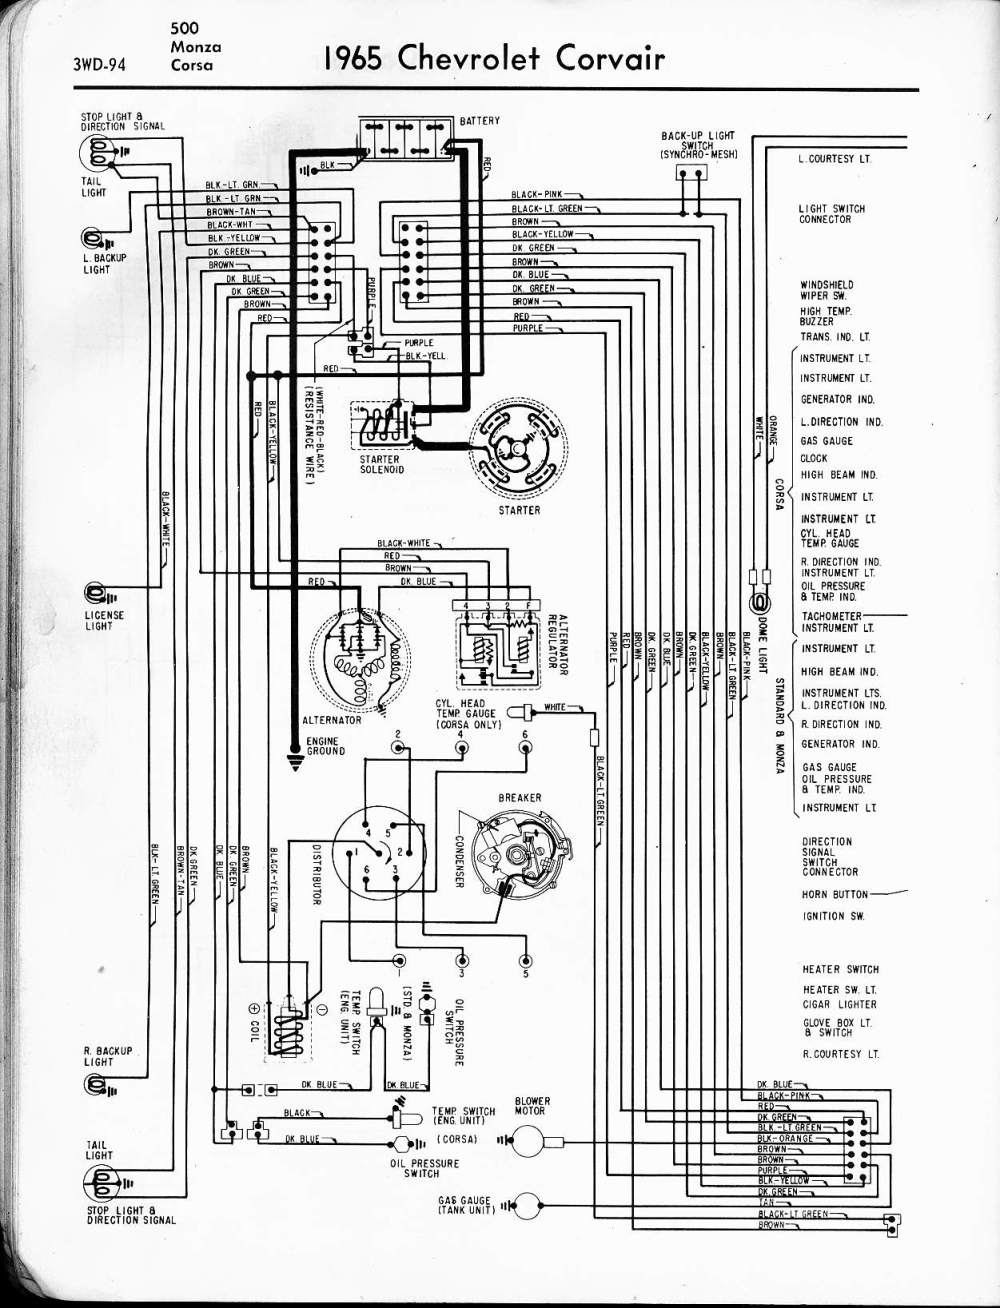 medium resolution of wiring diagram for early corvair conversion from generatoir to wiring diagram for early corvair conversion from generatoir to